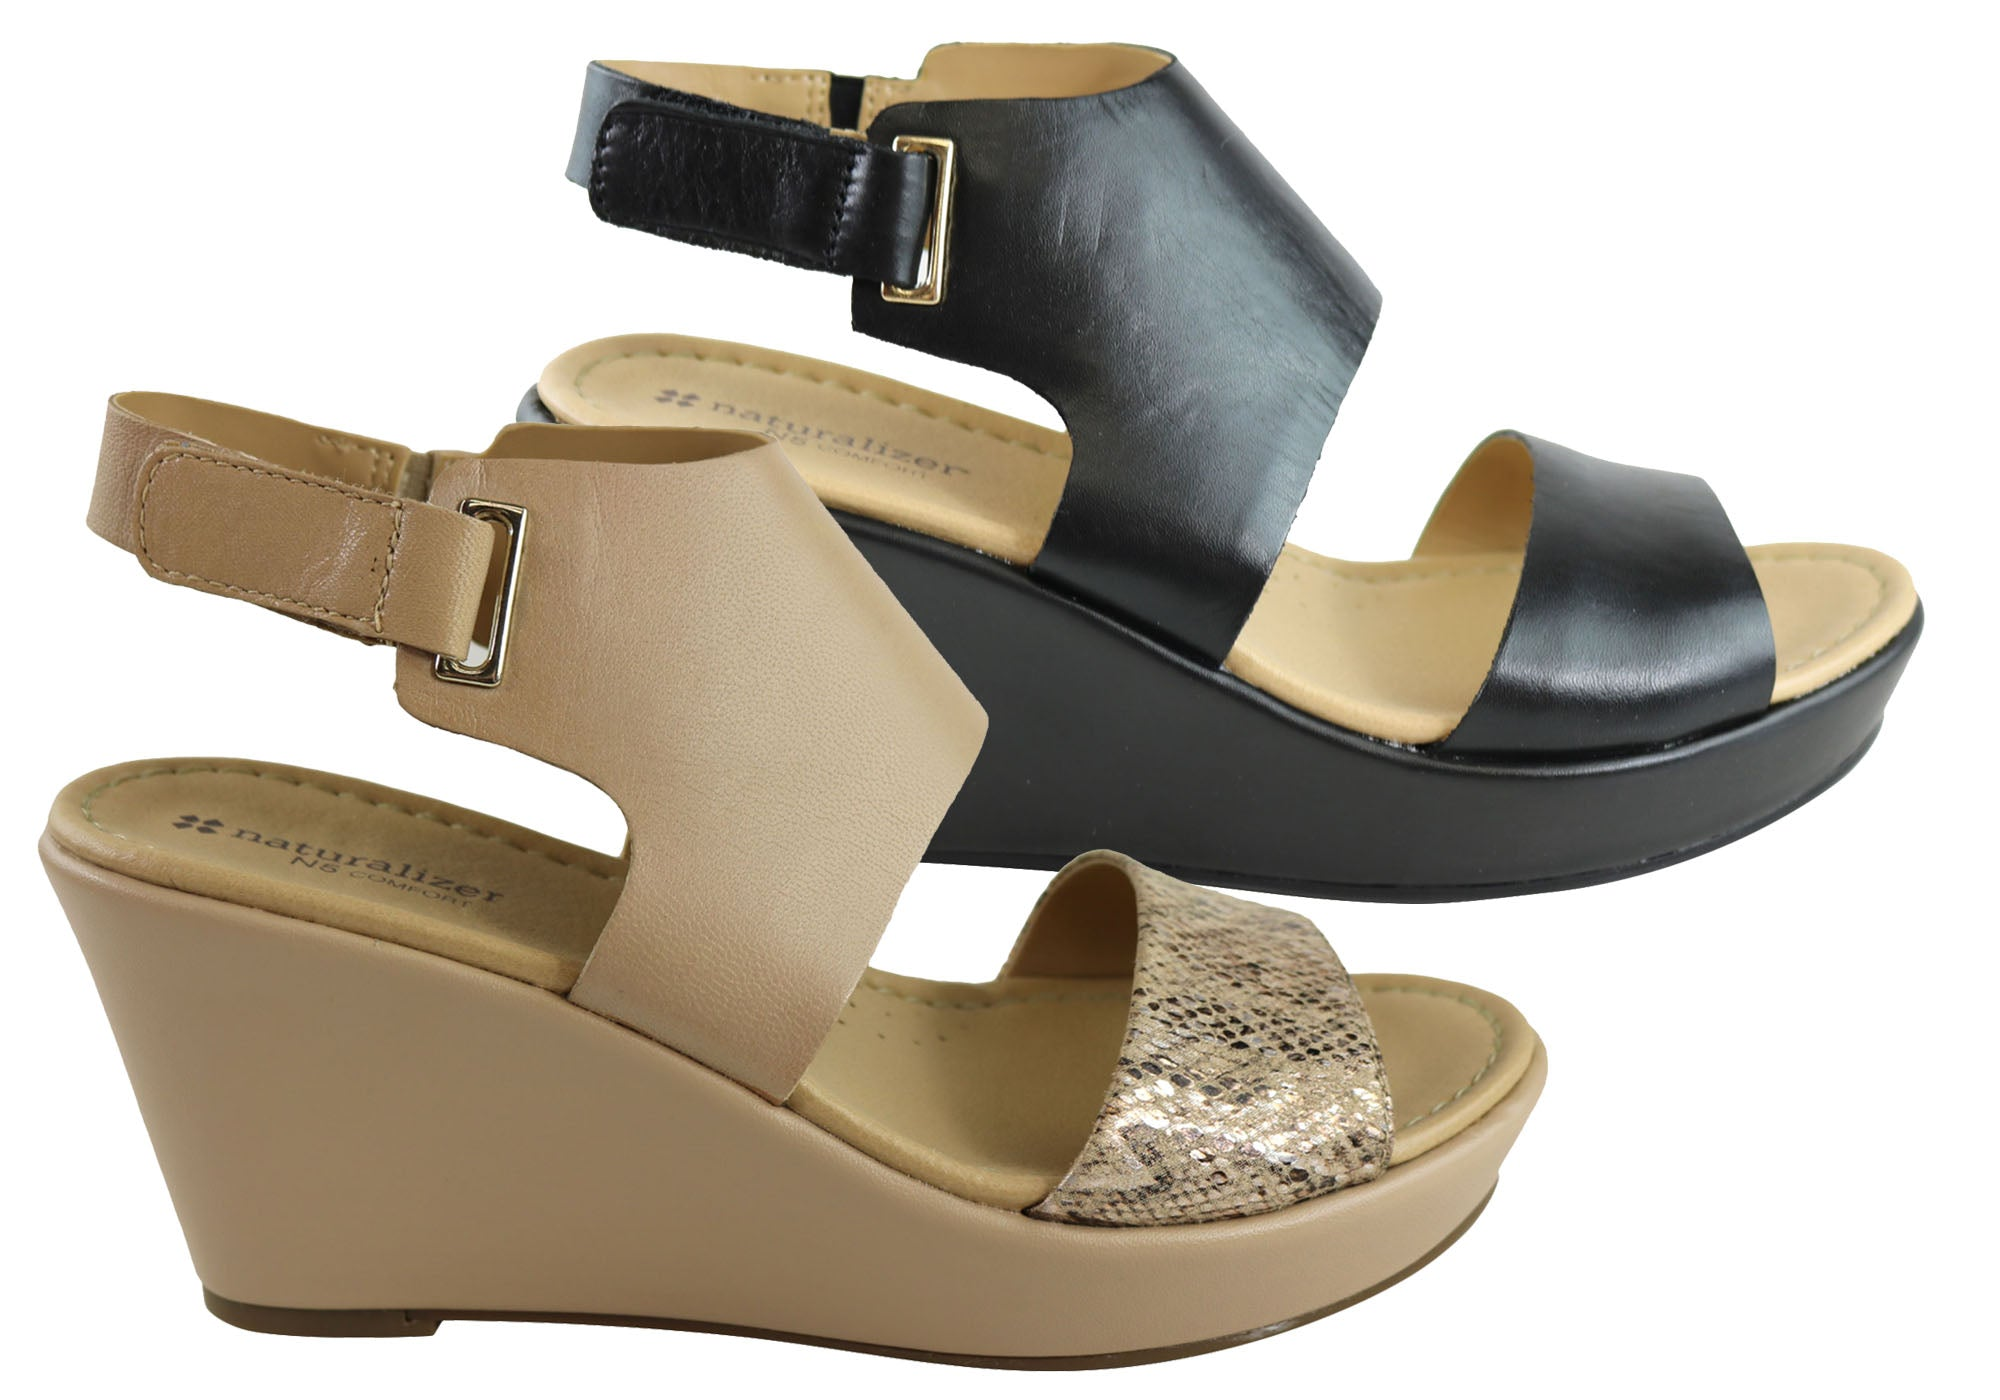 d8e6fa47994 New Naturalizer Nenna Womens Leather Comfortable Wedge Sandals